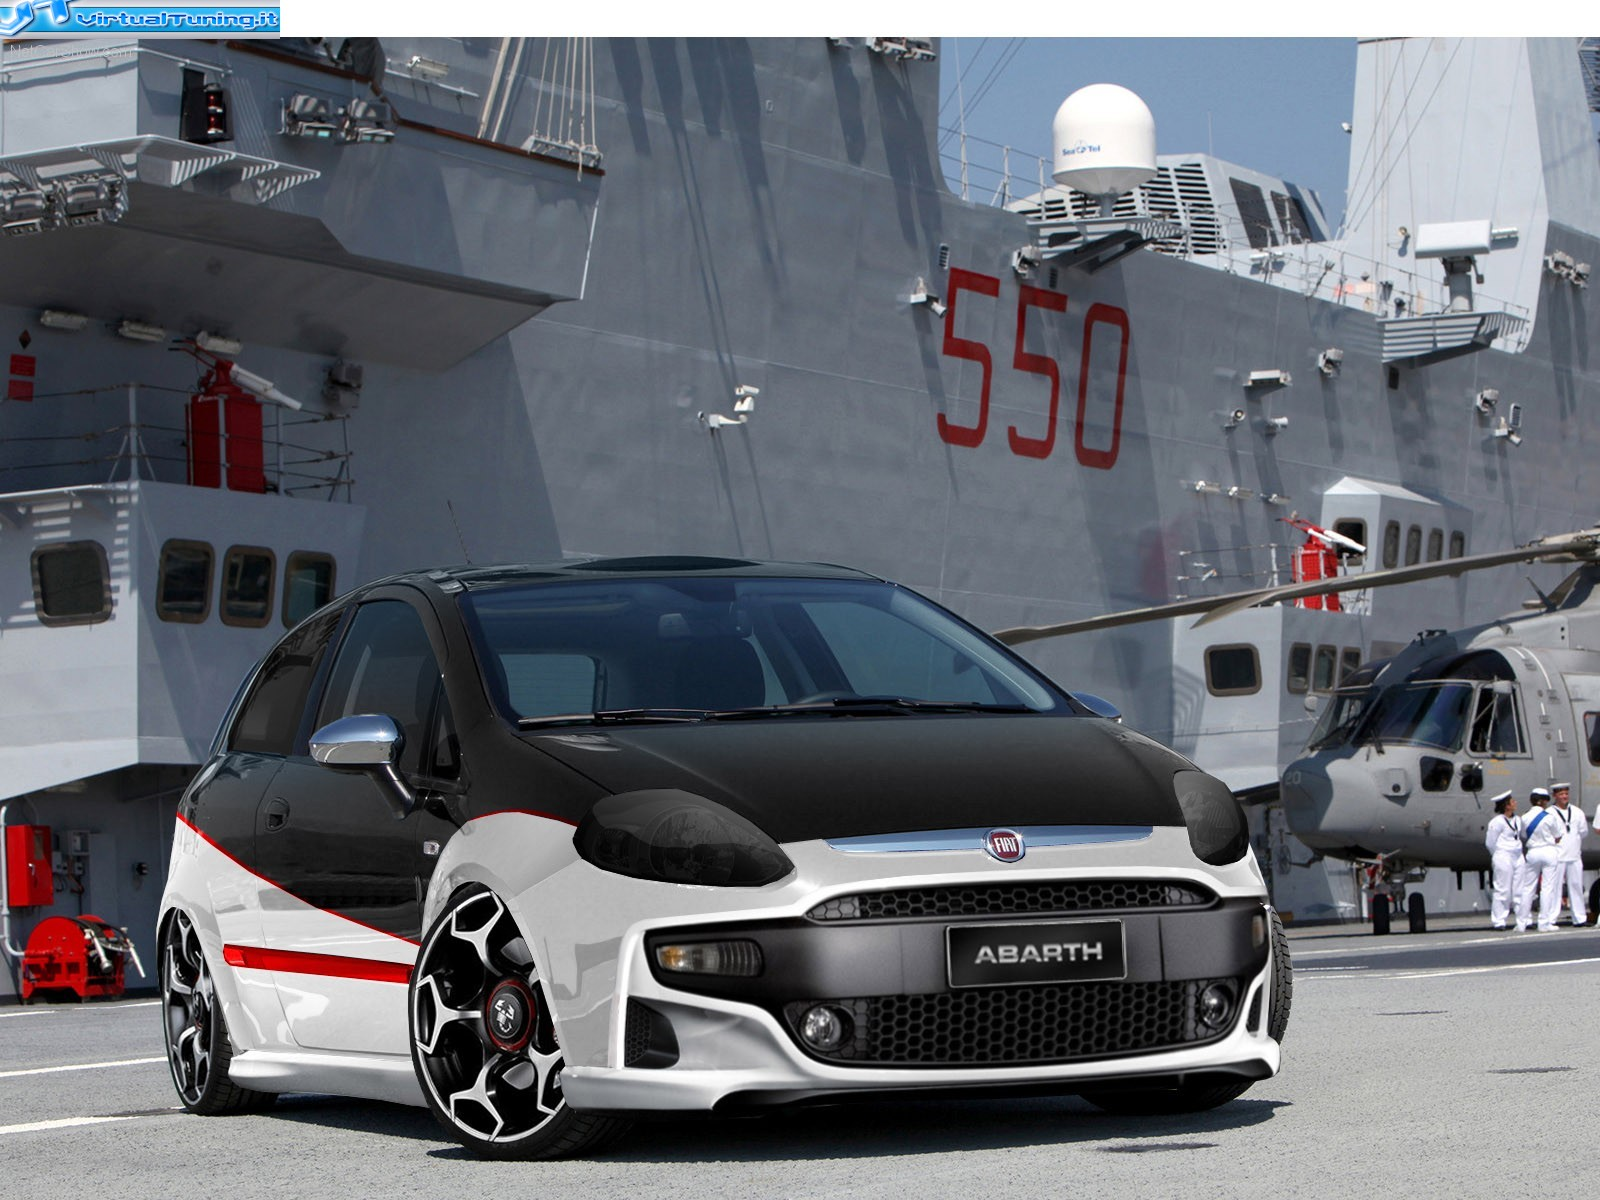 fiat punto evo by abarth design virtualtuning it. Black Bedroom Furniture Sets. Home Design Ideas